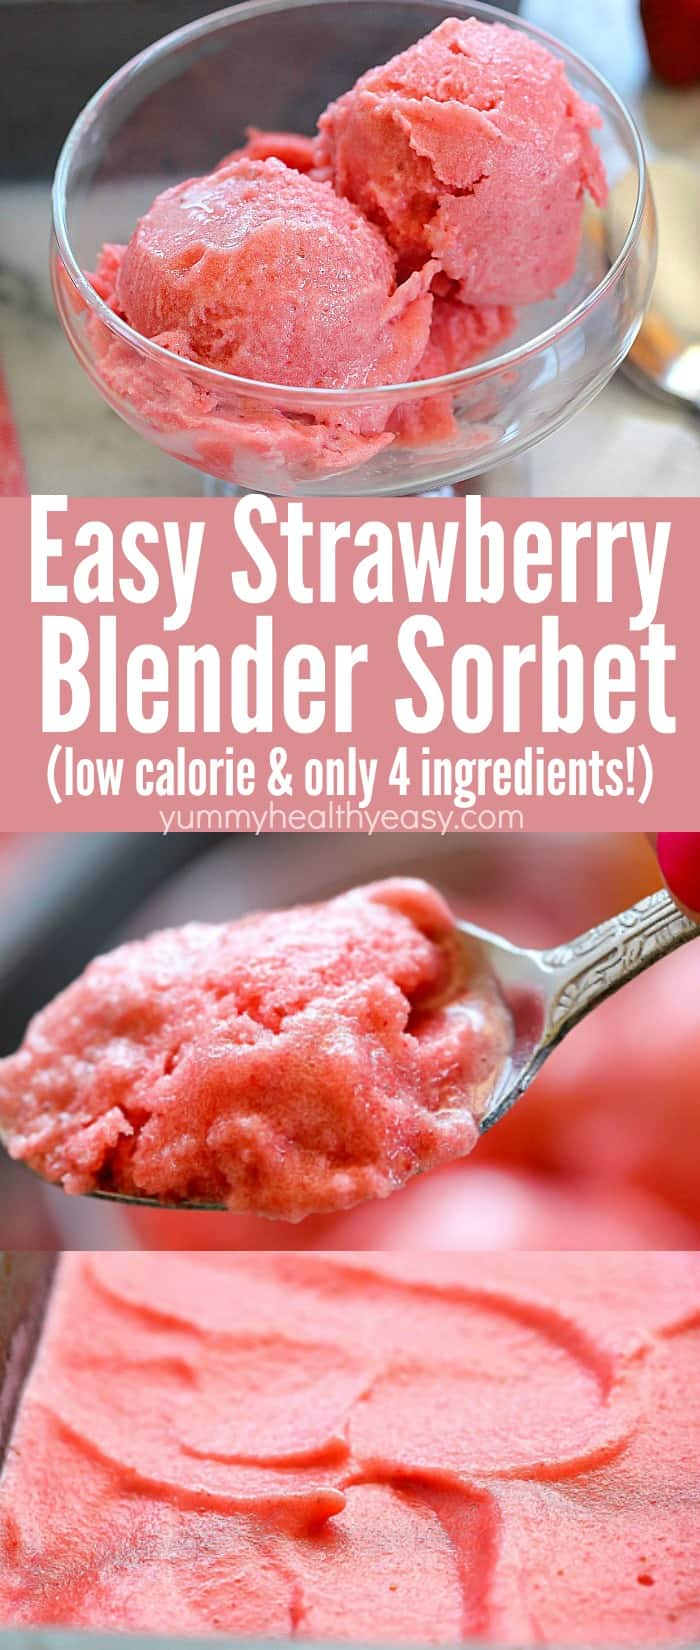 Get ready for a flavor explosion when you try this Easy Strawberry Sorbet Recipe! Only a few ingredients and a blender needed for this delicious, healthier summertime treat -only 21 calories per serving! #AD #sorbet #strawberry #summer #dessert #healthyrecipe #healthydessert via @jennikolaus